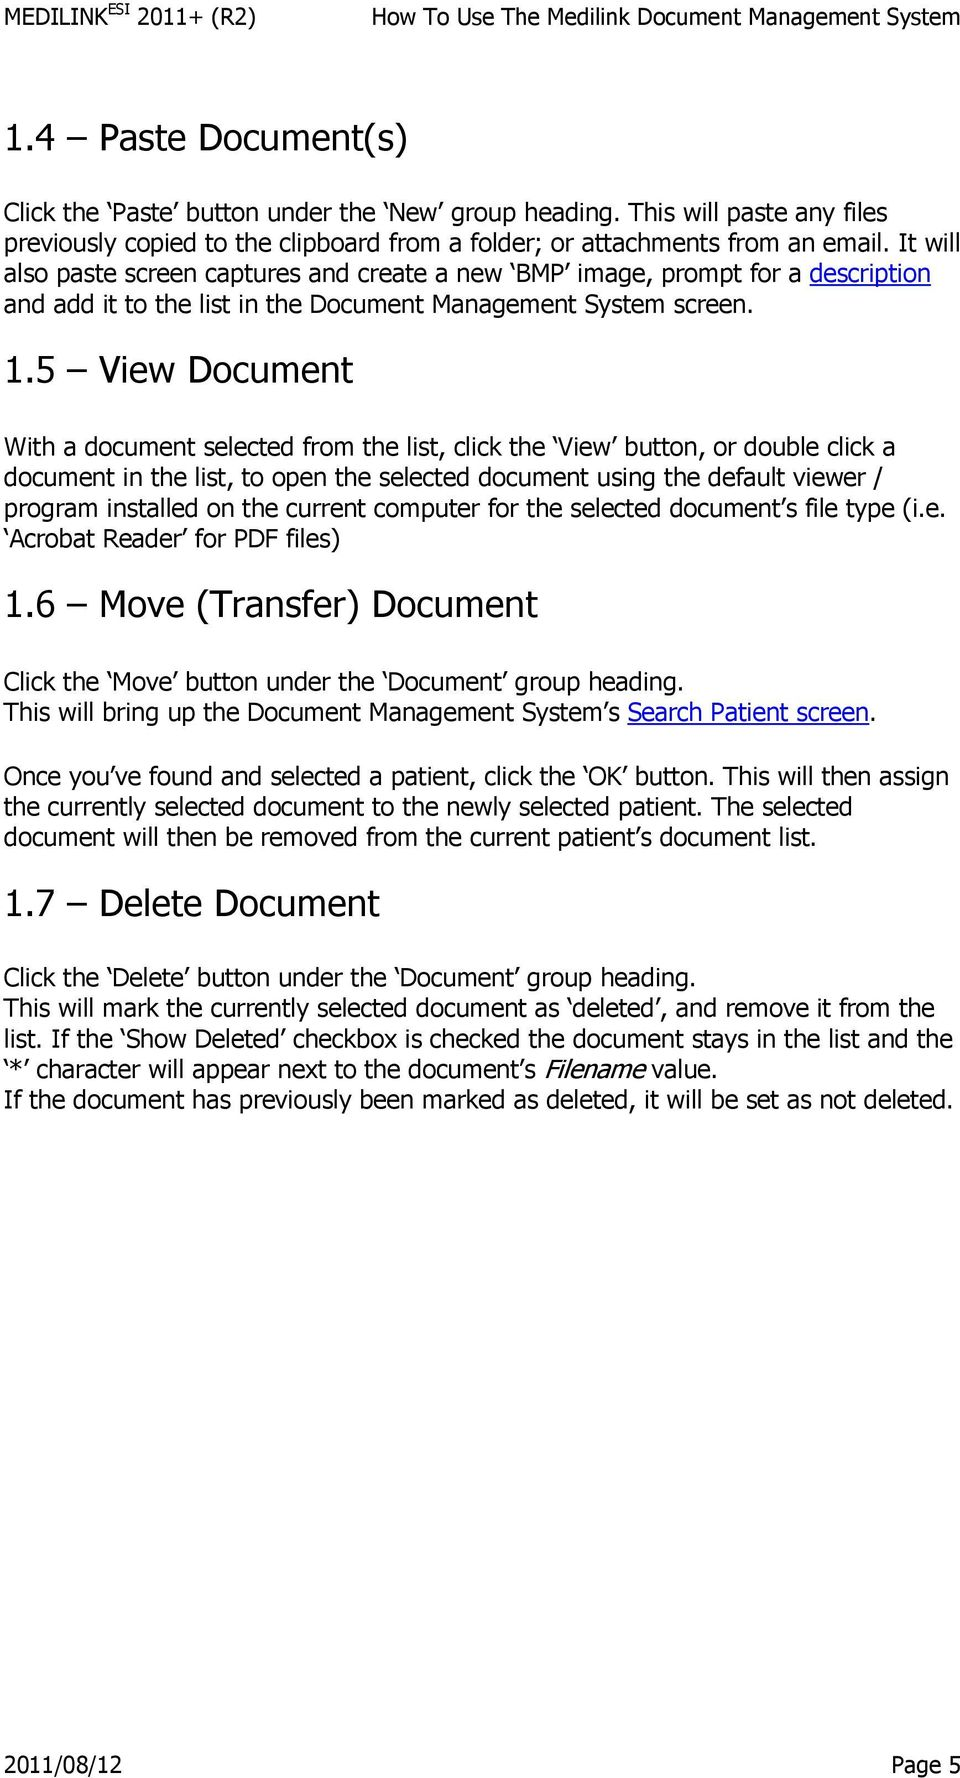 5 View Document With a document selected from the list, click the View button, or double click a document in the list, to open the selected document using the default viewer / program installed on